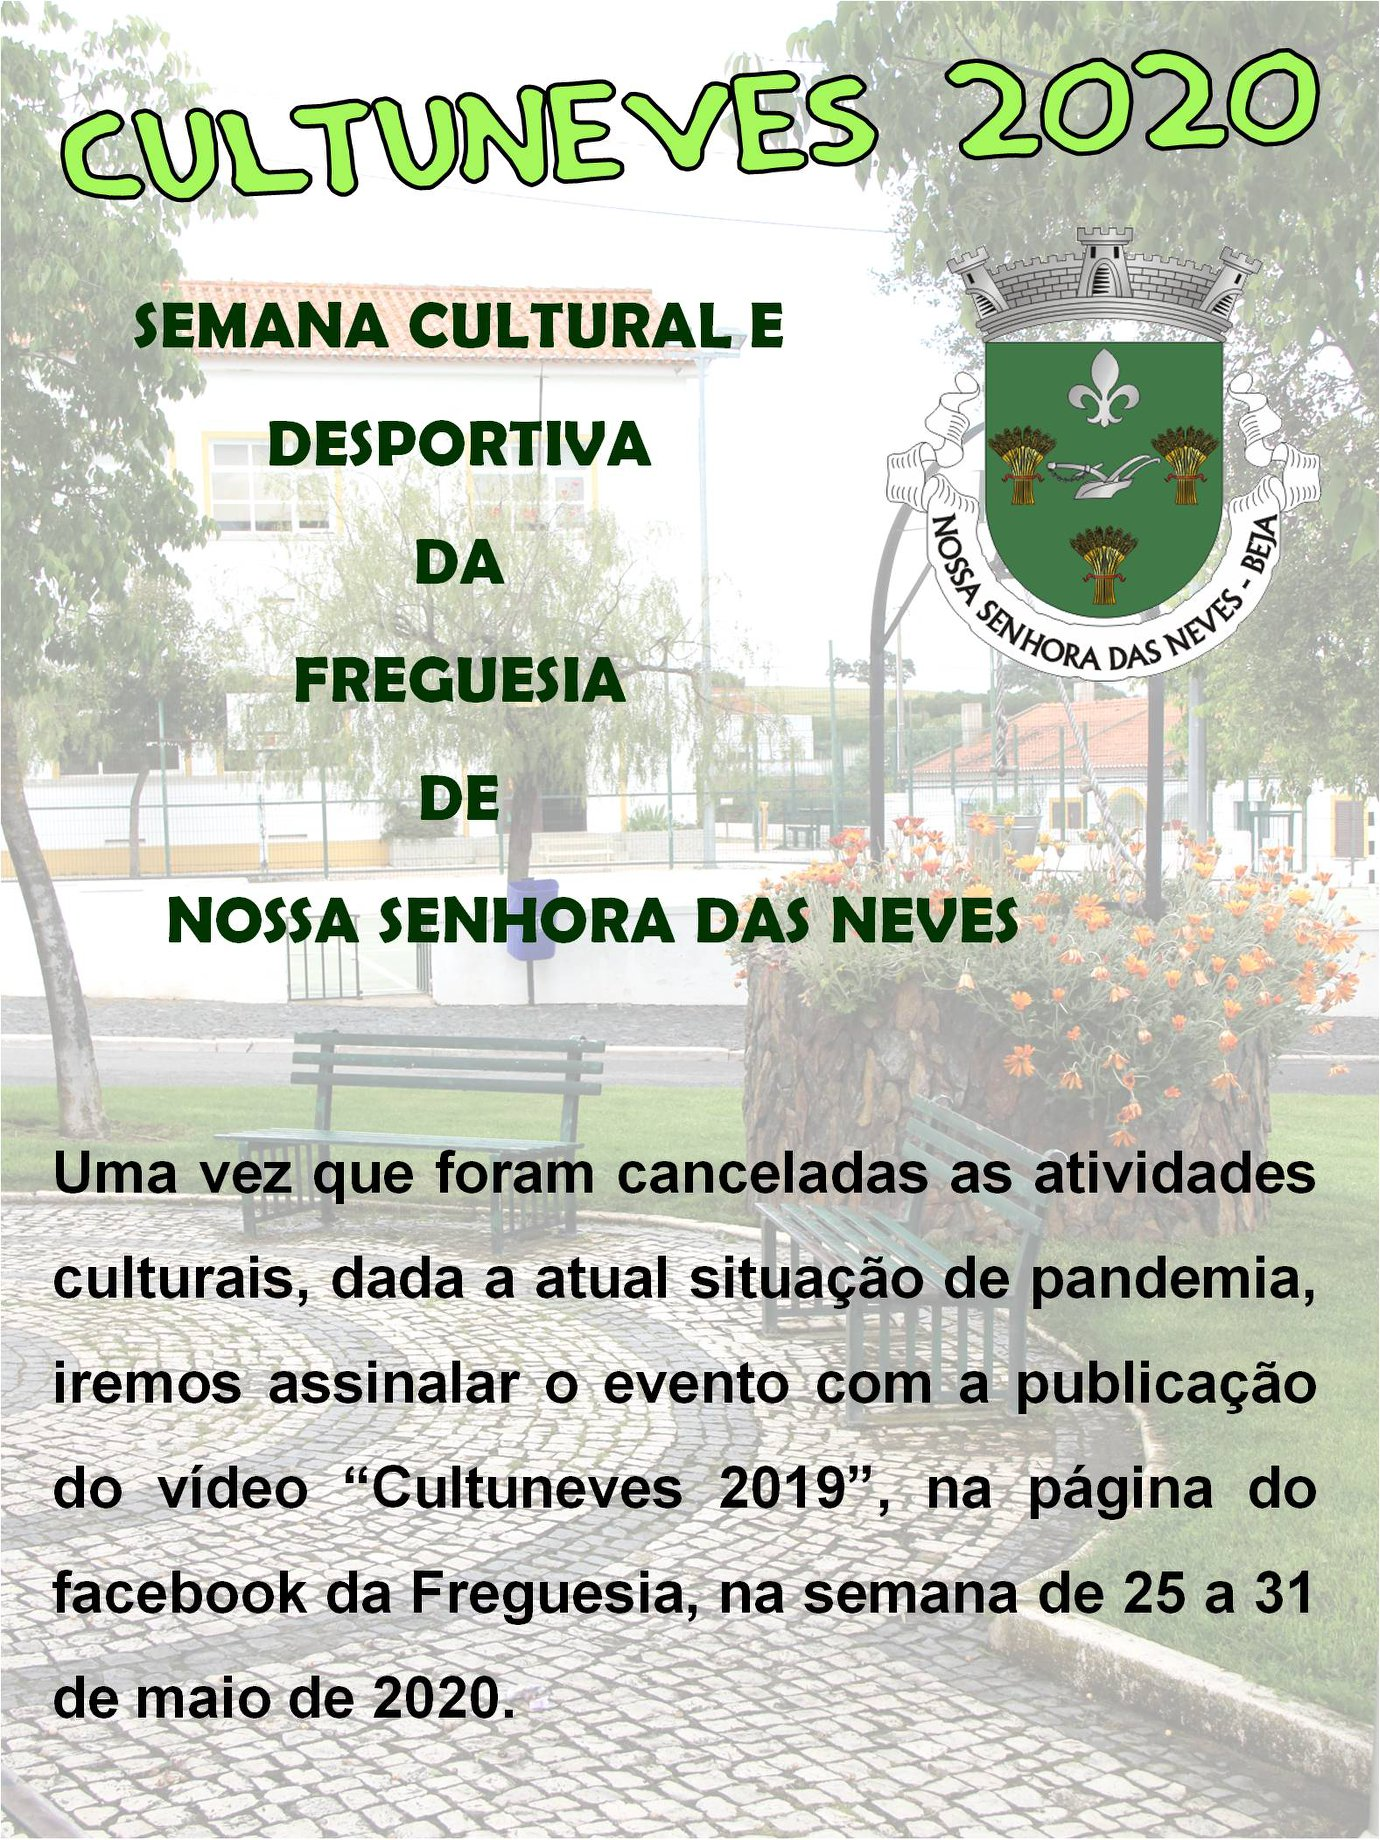 Comunicado Cultuneves 2020